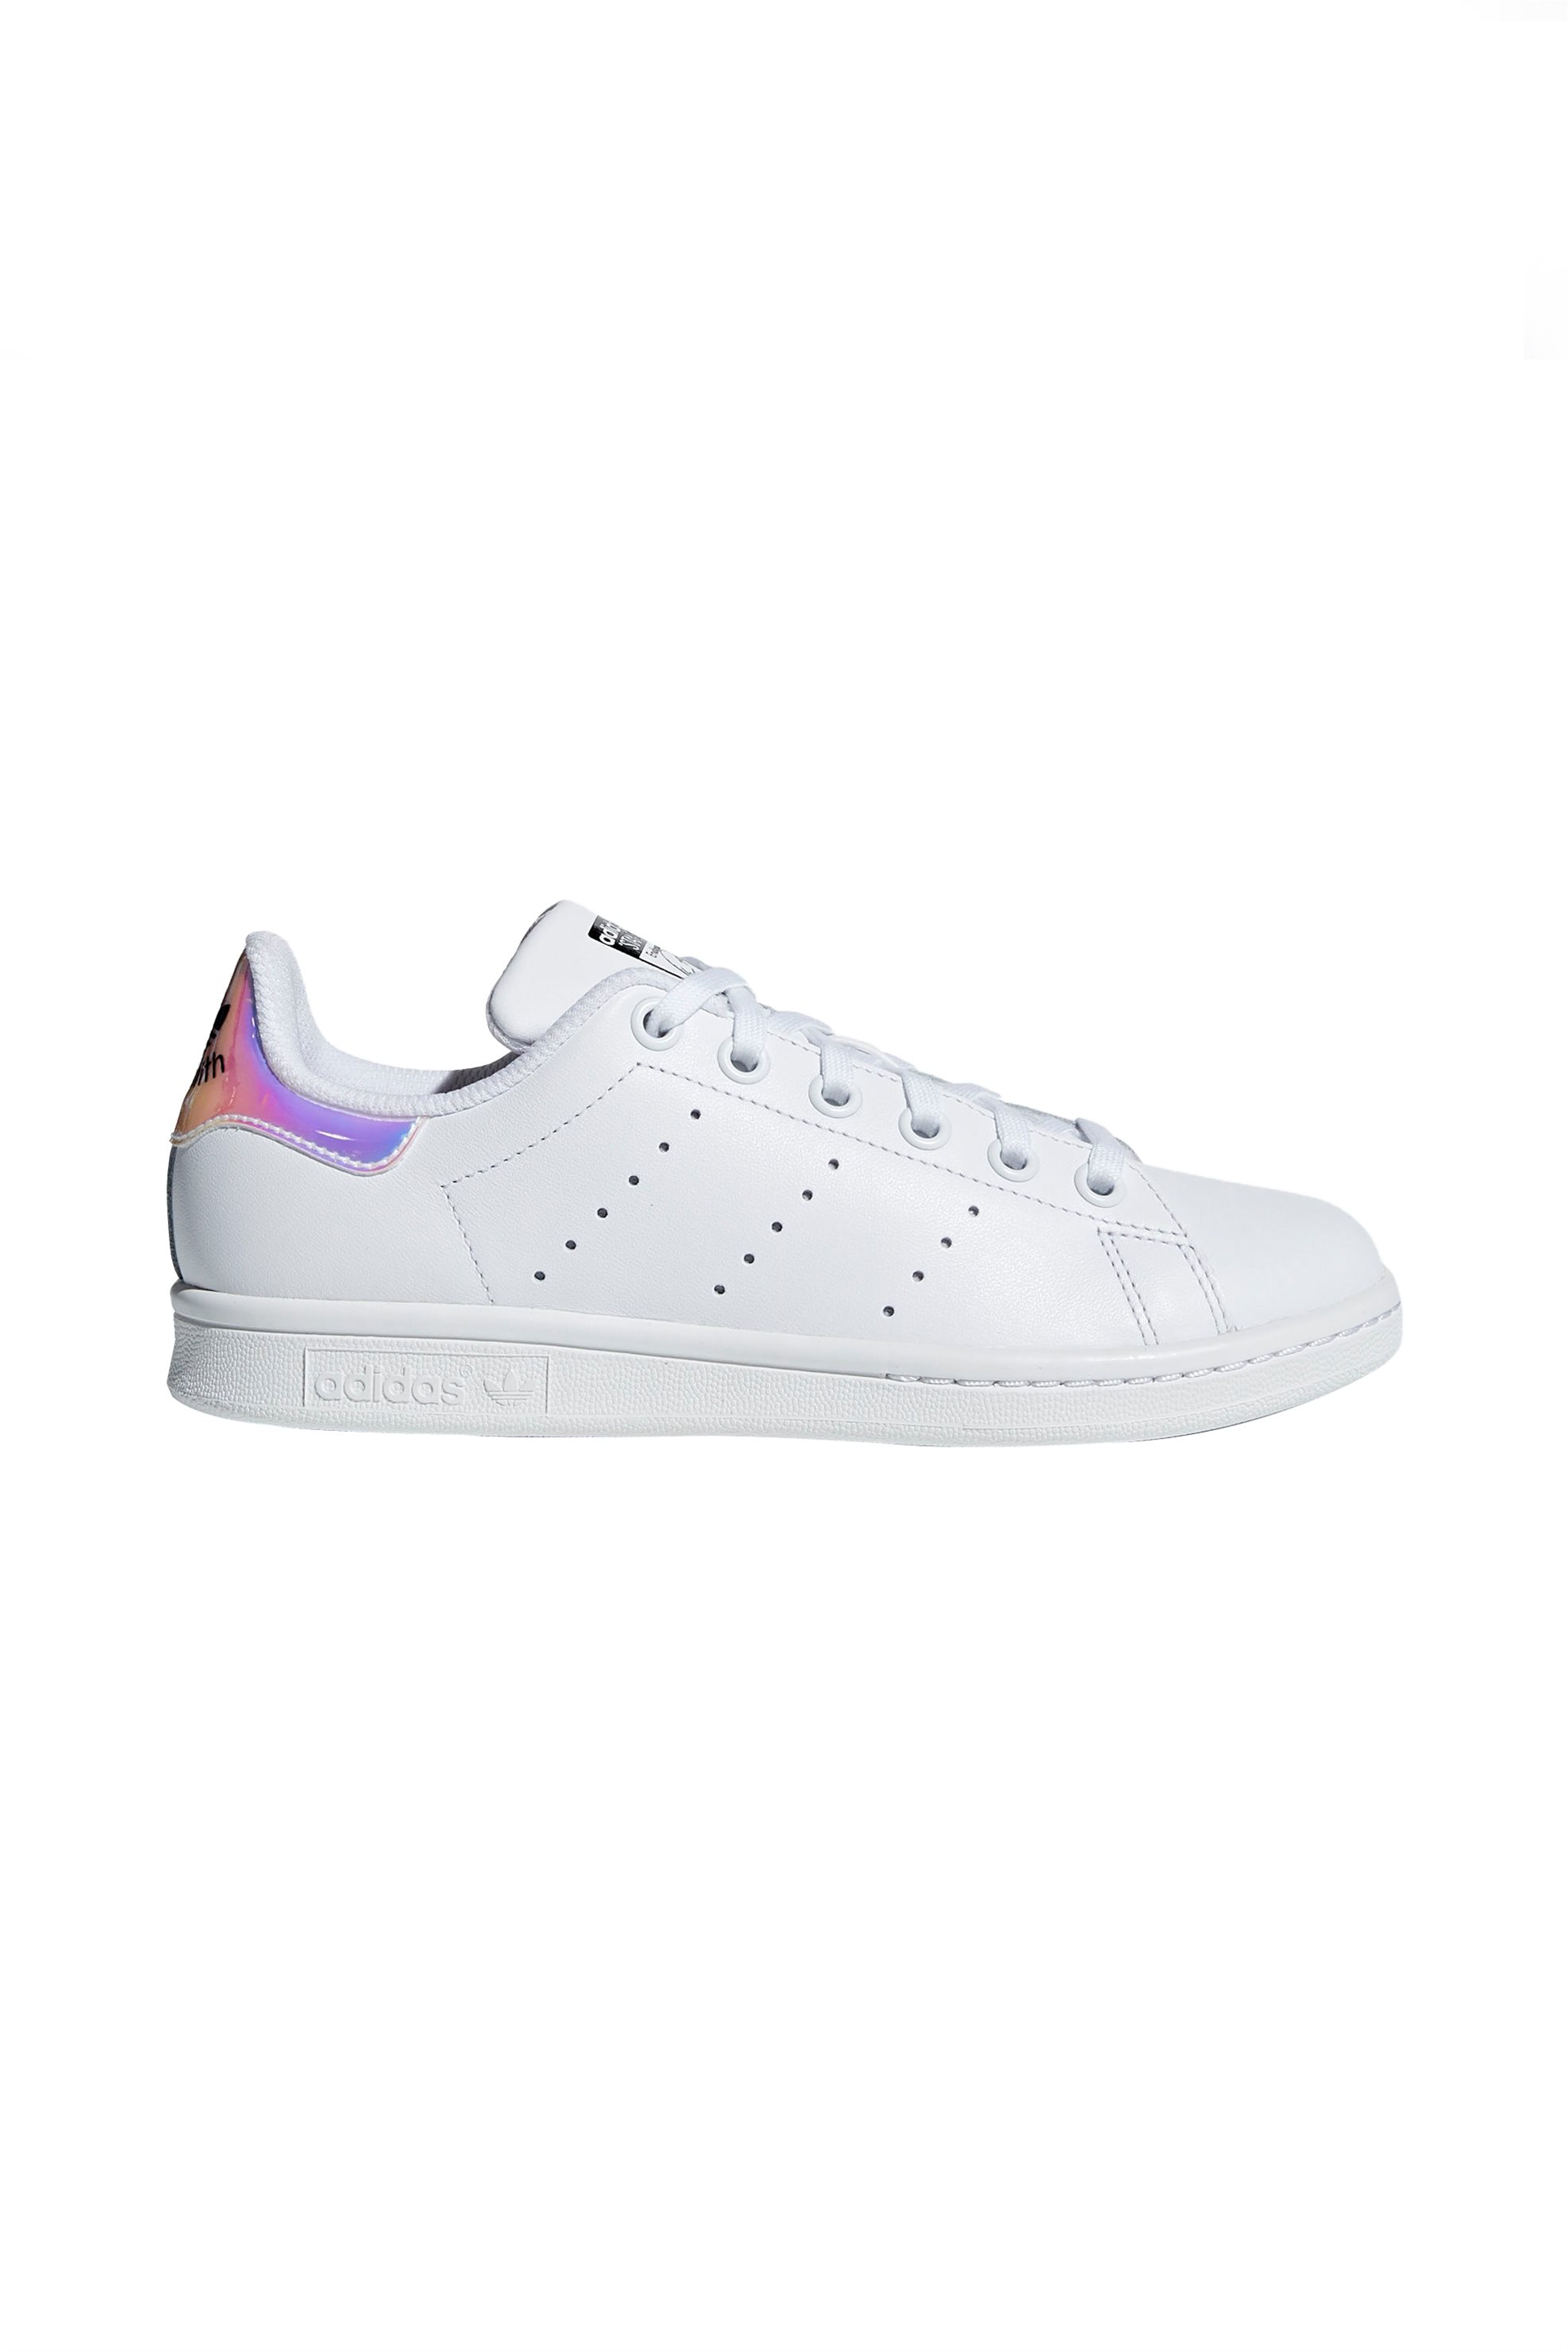 Adidas παιδικά αθλητικά παπούτσια Stan Smith - AQ6272 - Λευκό παιδι   παπουτσια   κορίτσια   αγόρια   trainers   sneakers   trainers   sneaker